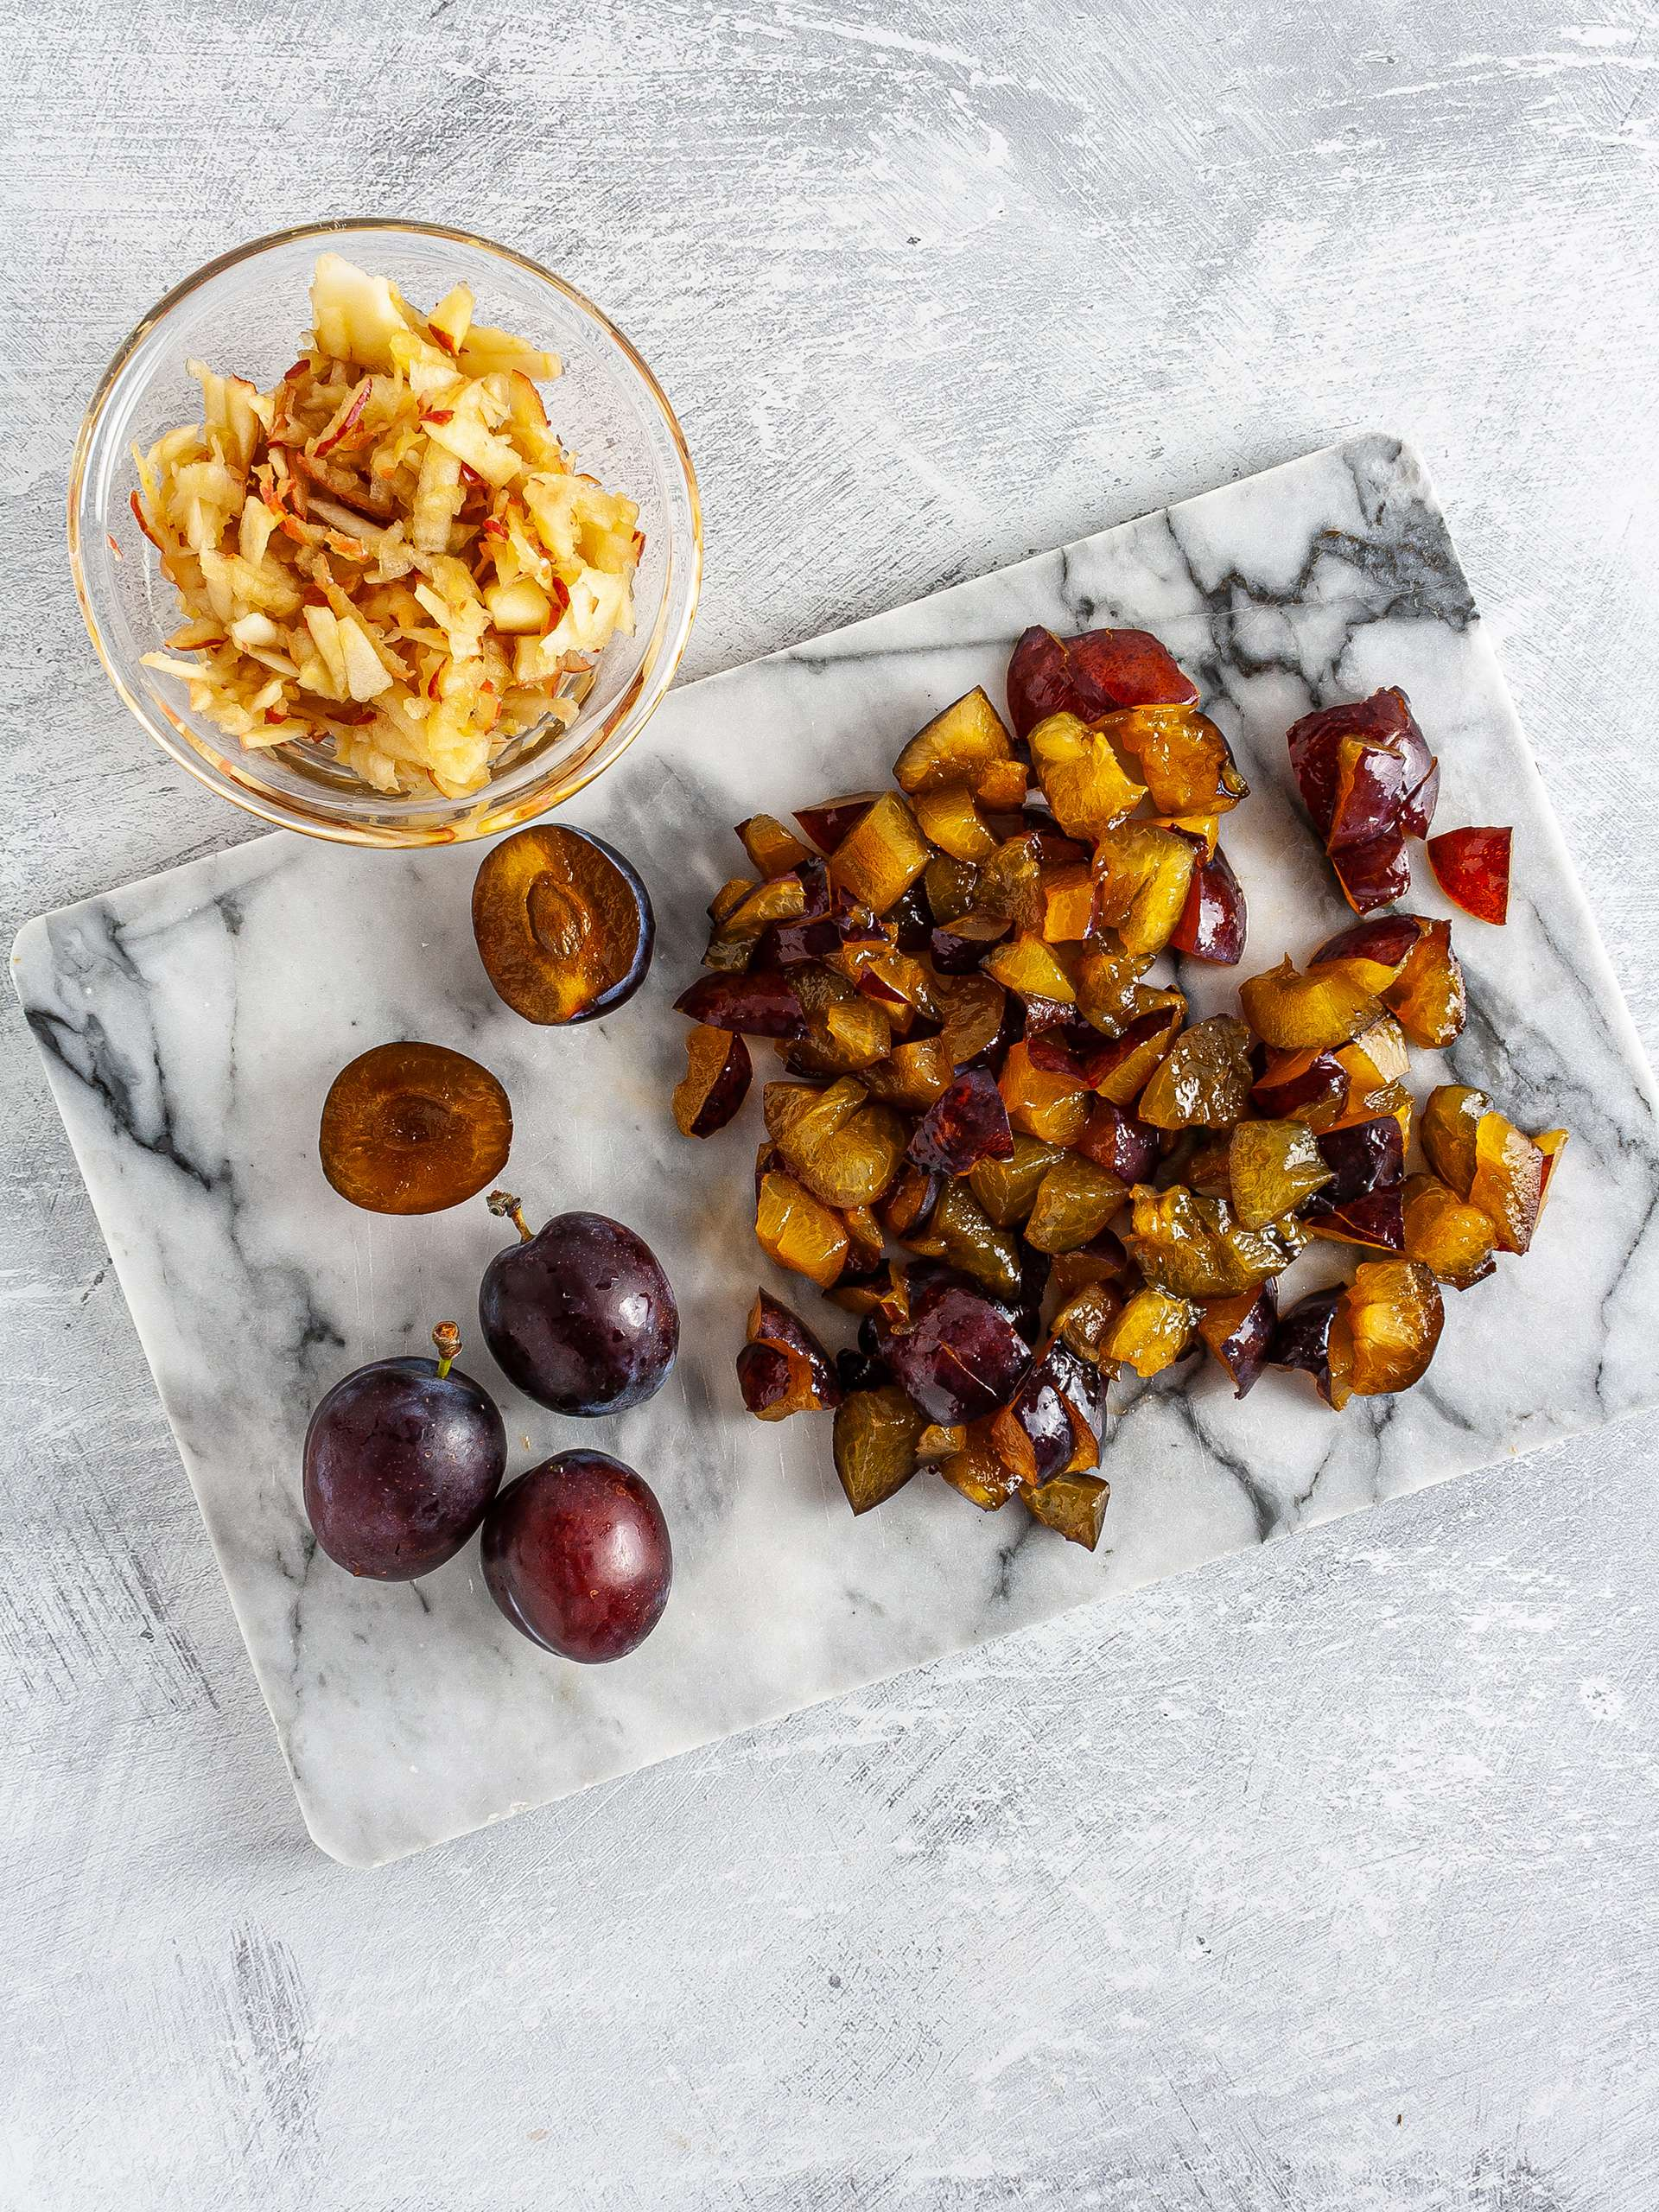 Chopped plums and grated apple